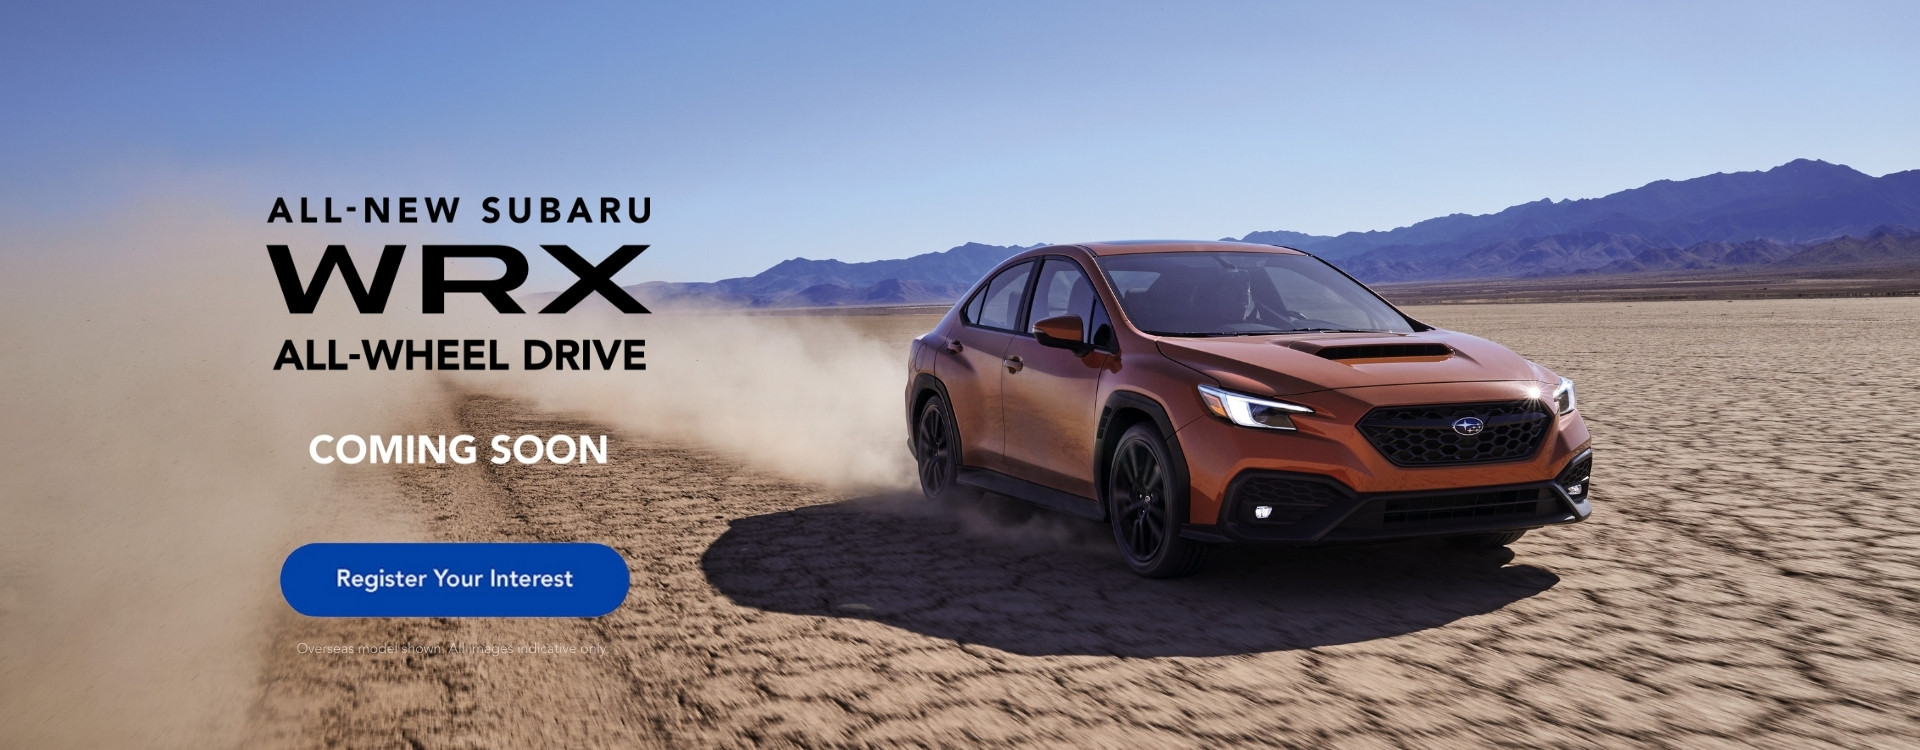 Register your interest for the all-new Subaru WRX All-Wheel Drive